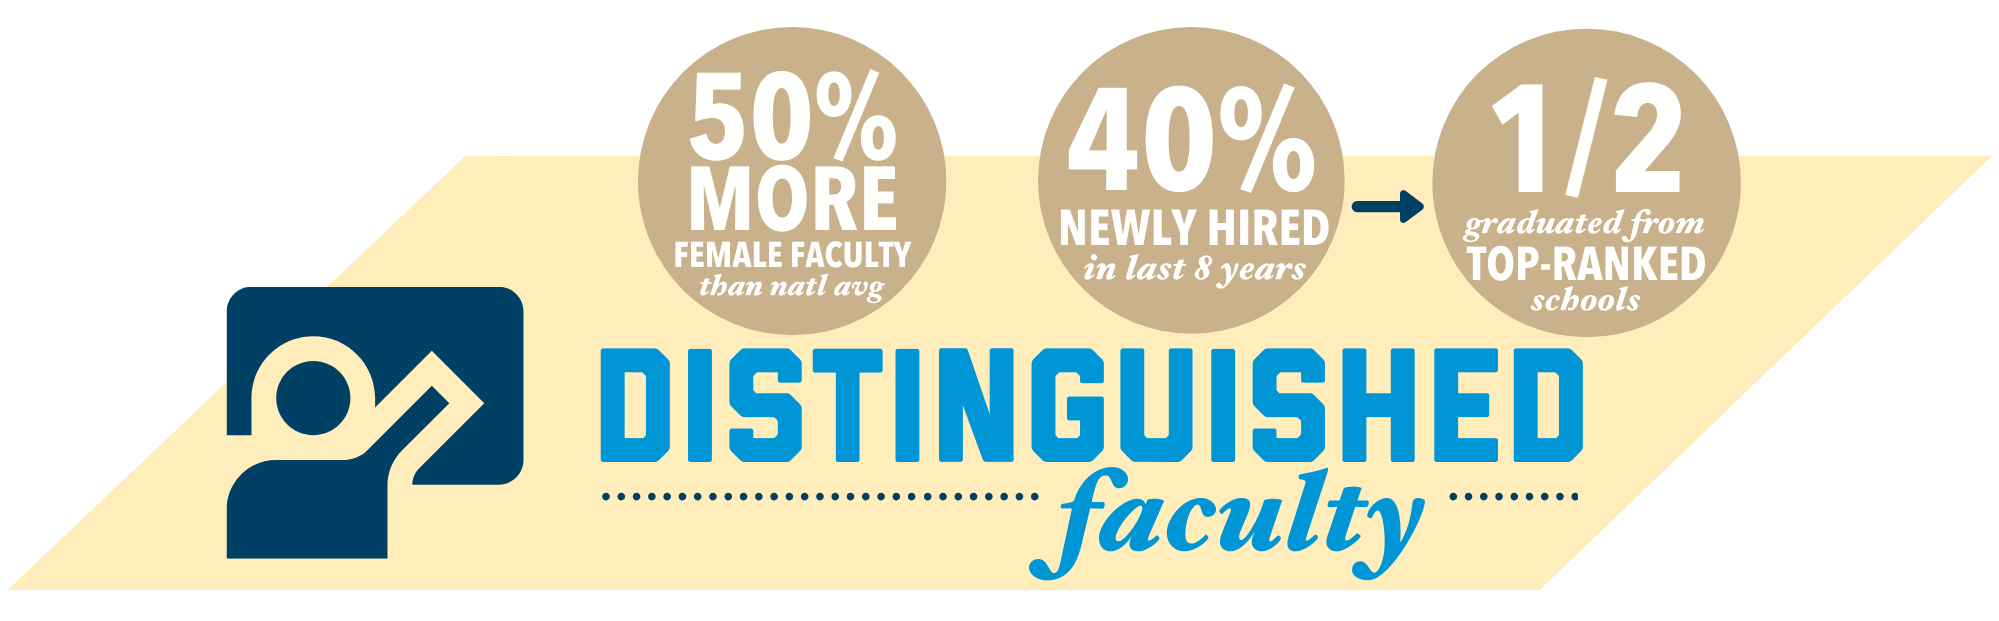 distinguished faculty infographic